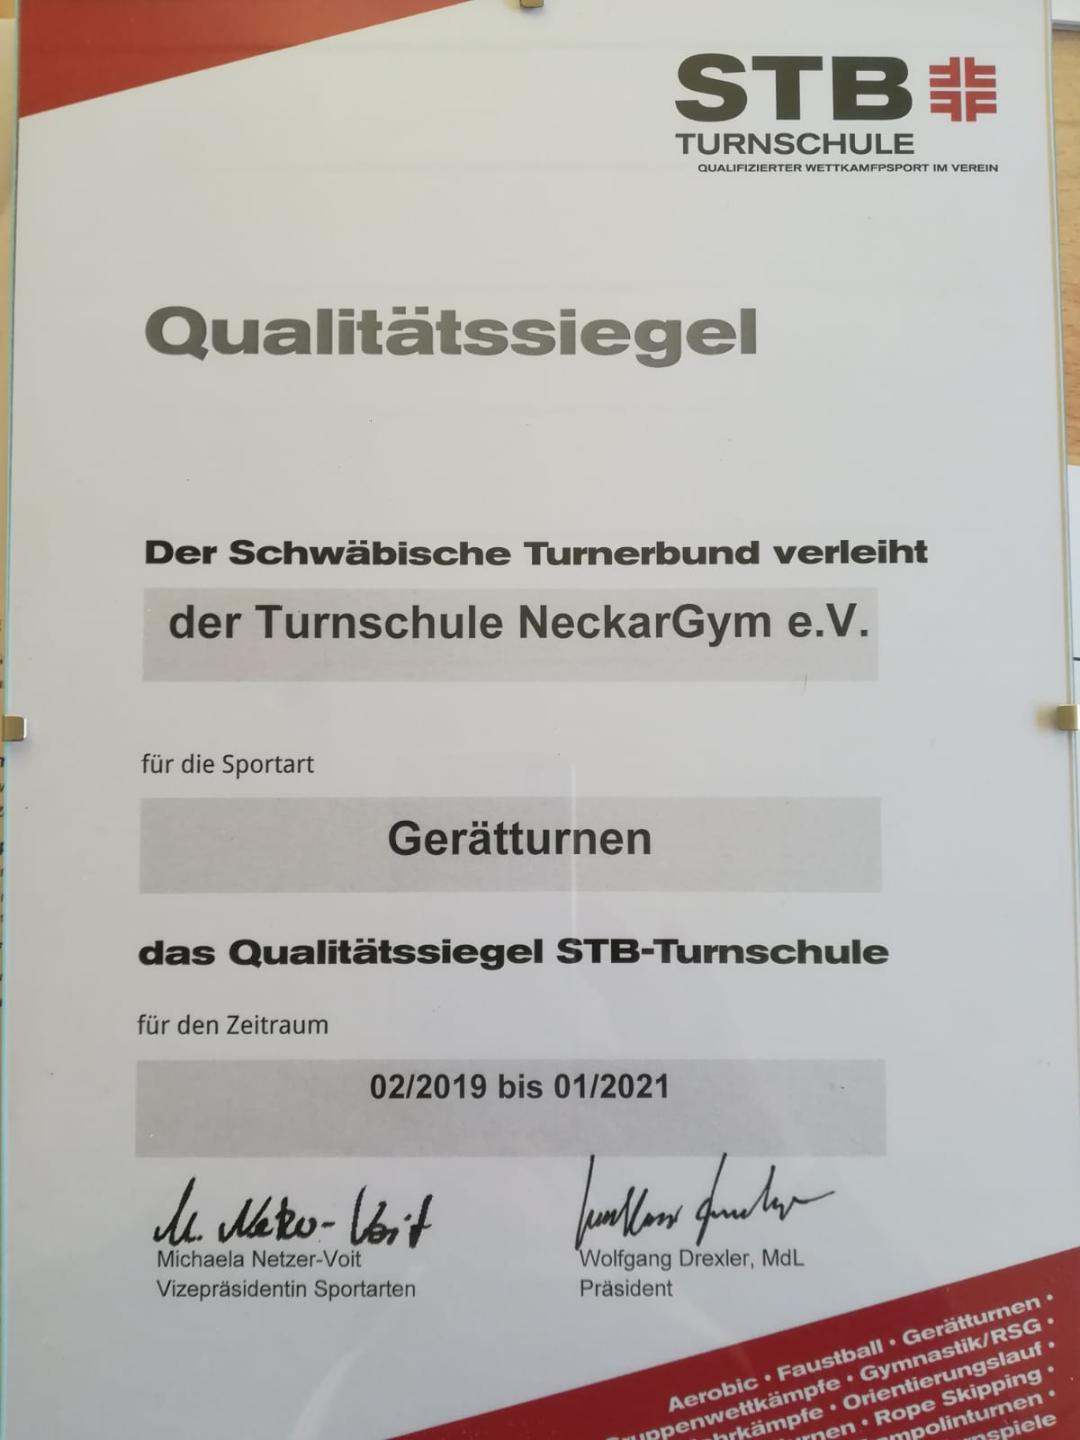 STB Turnschule